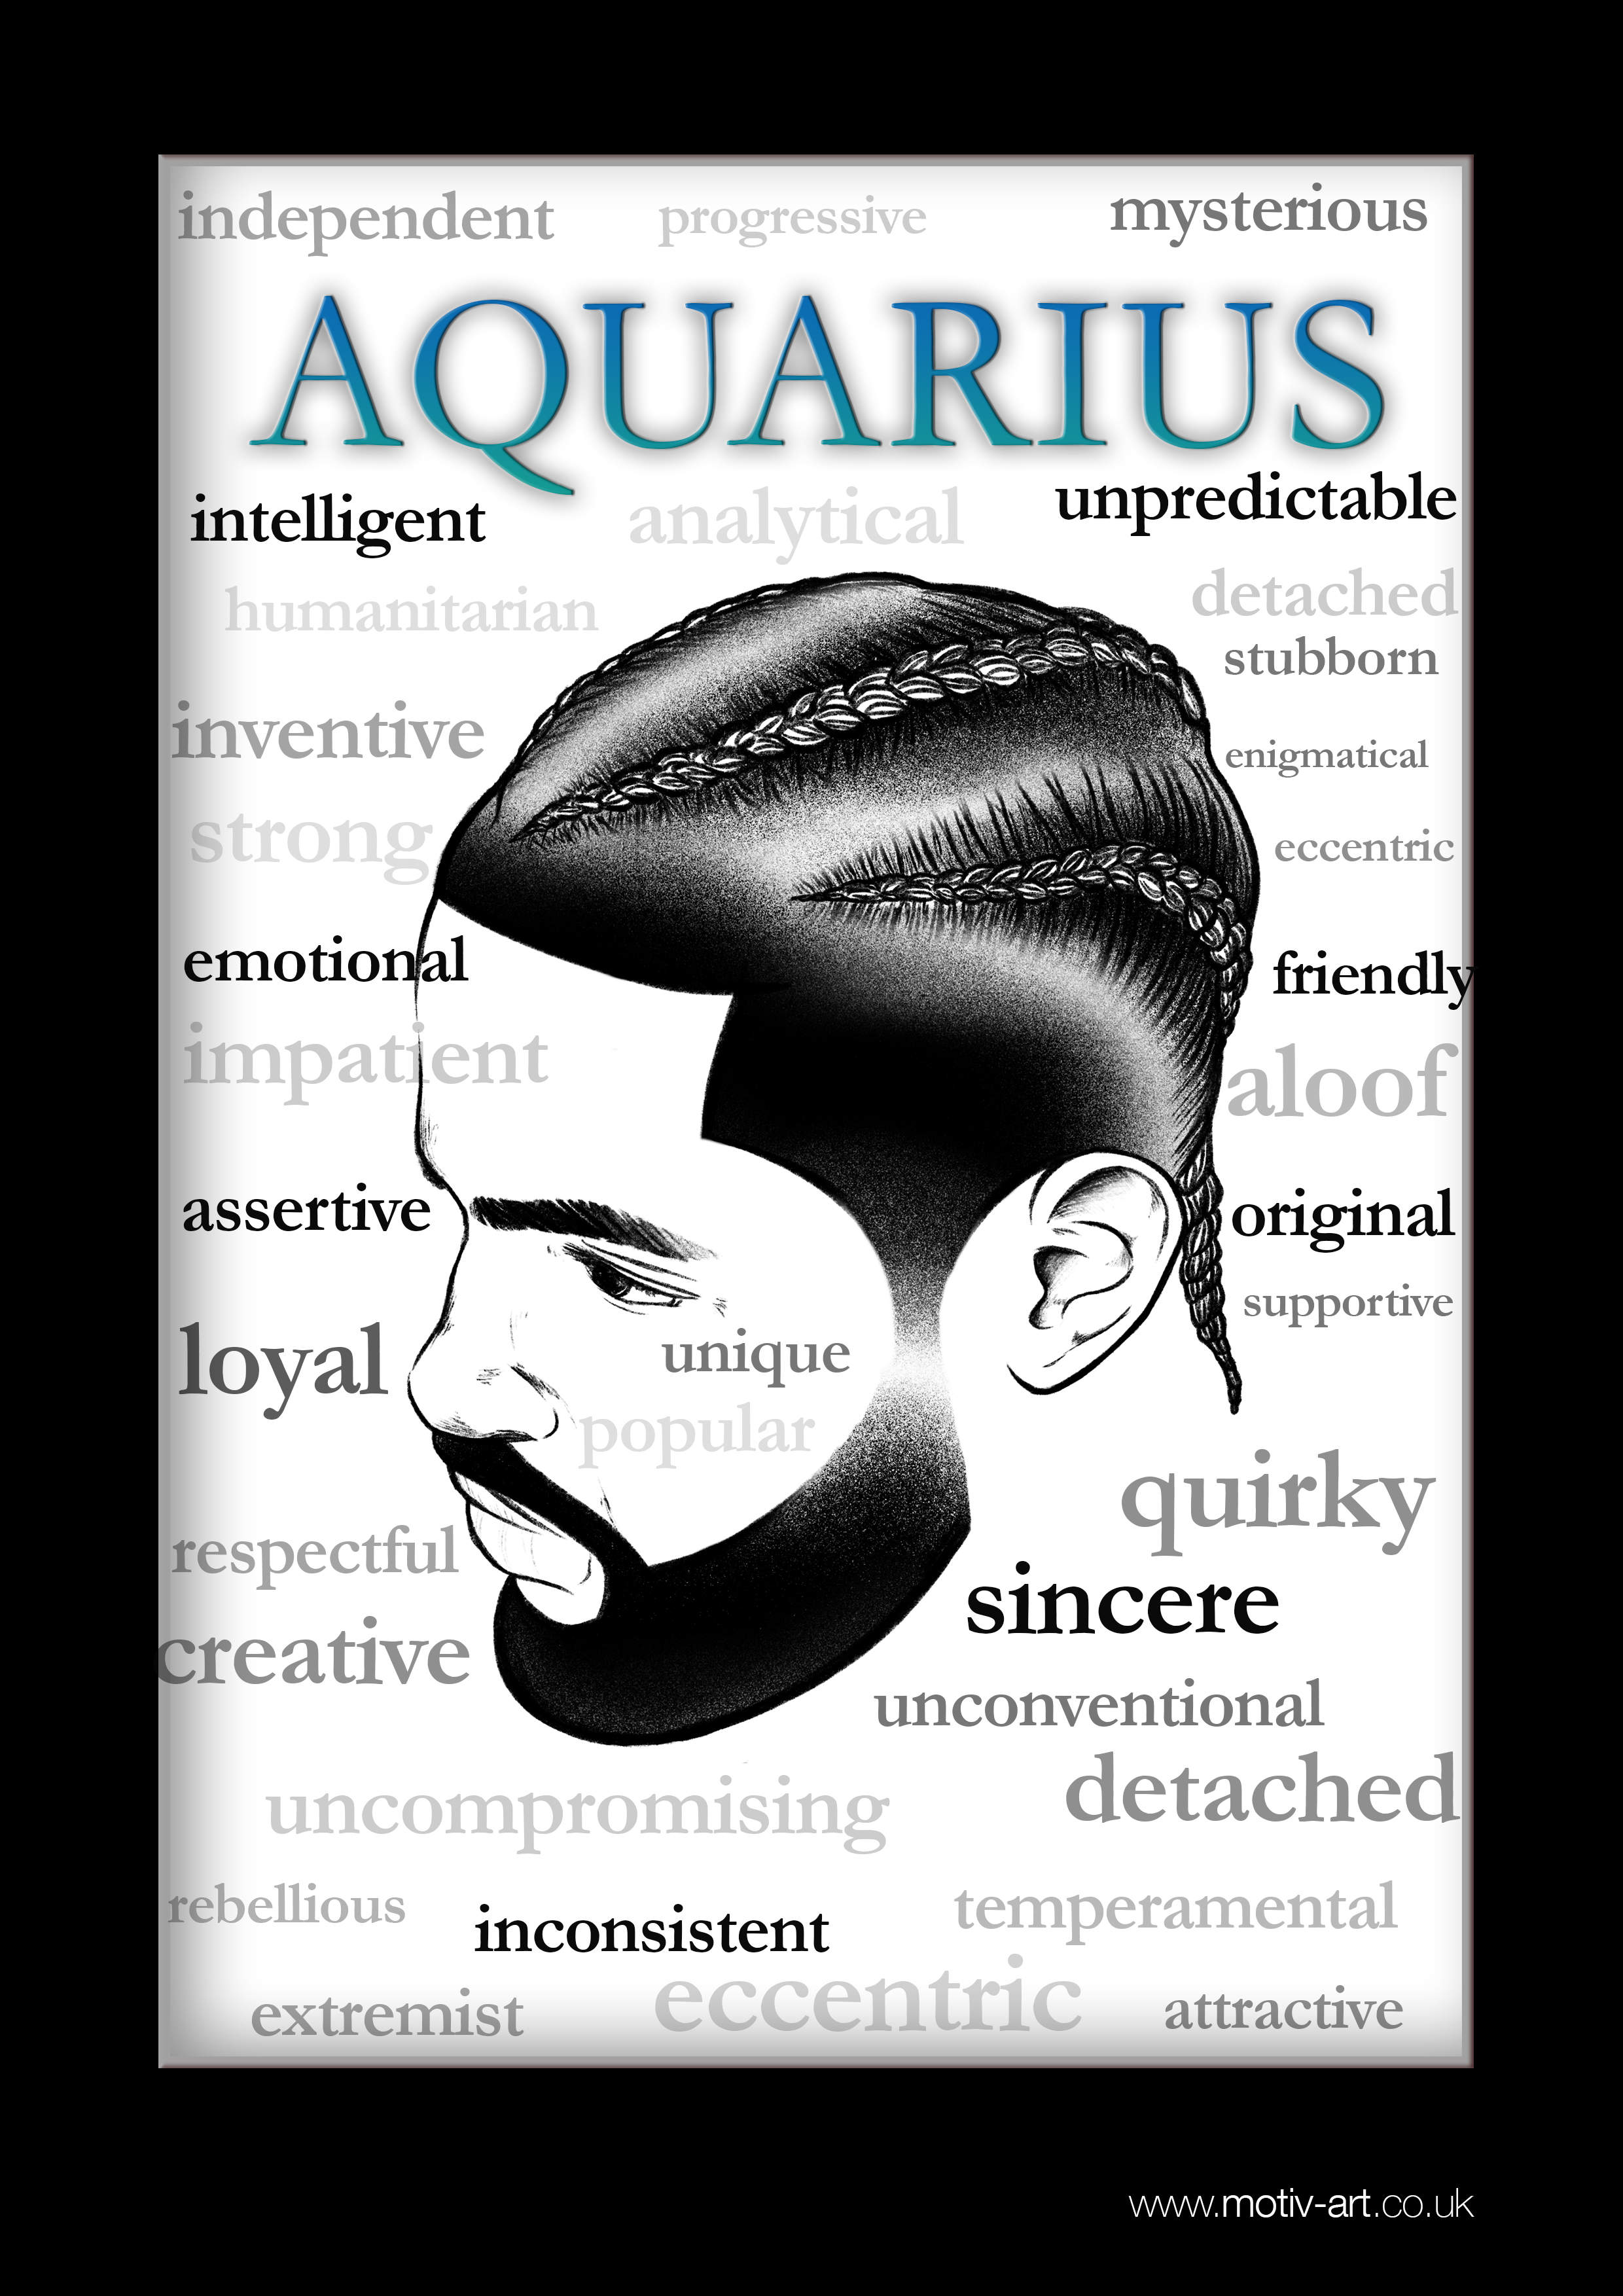 Aquarius - 21 Jan - 19 Feb